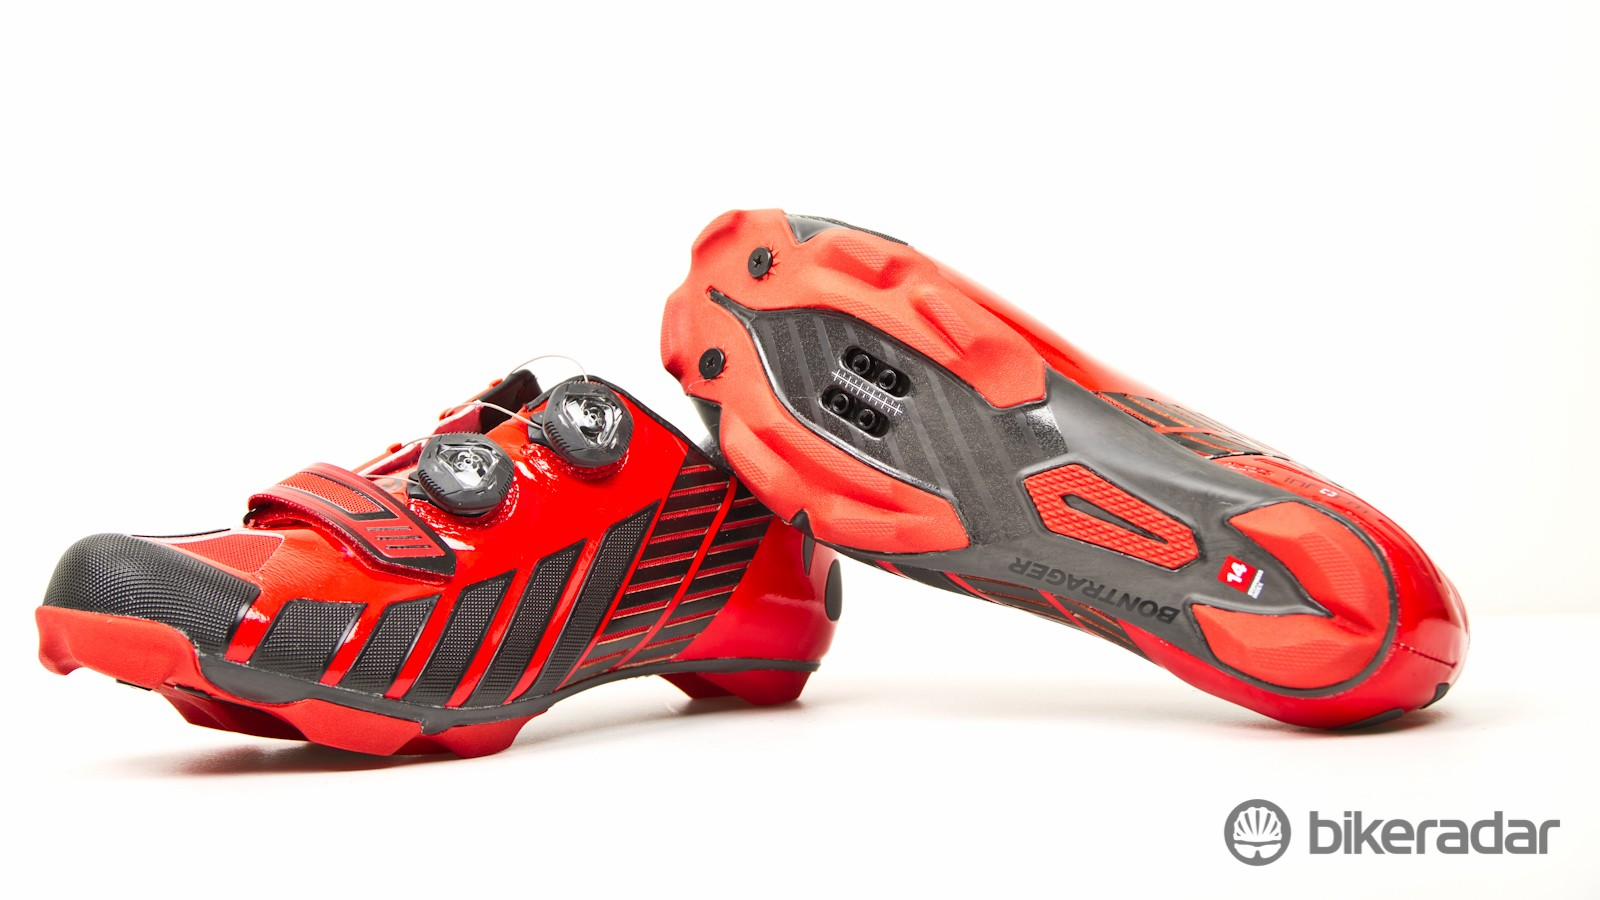 They're not in shops yet, but the Bontrager XXX MTB shoes signal a new level of racing shoe for the American brand